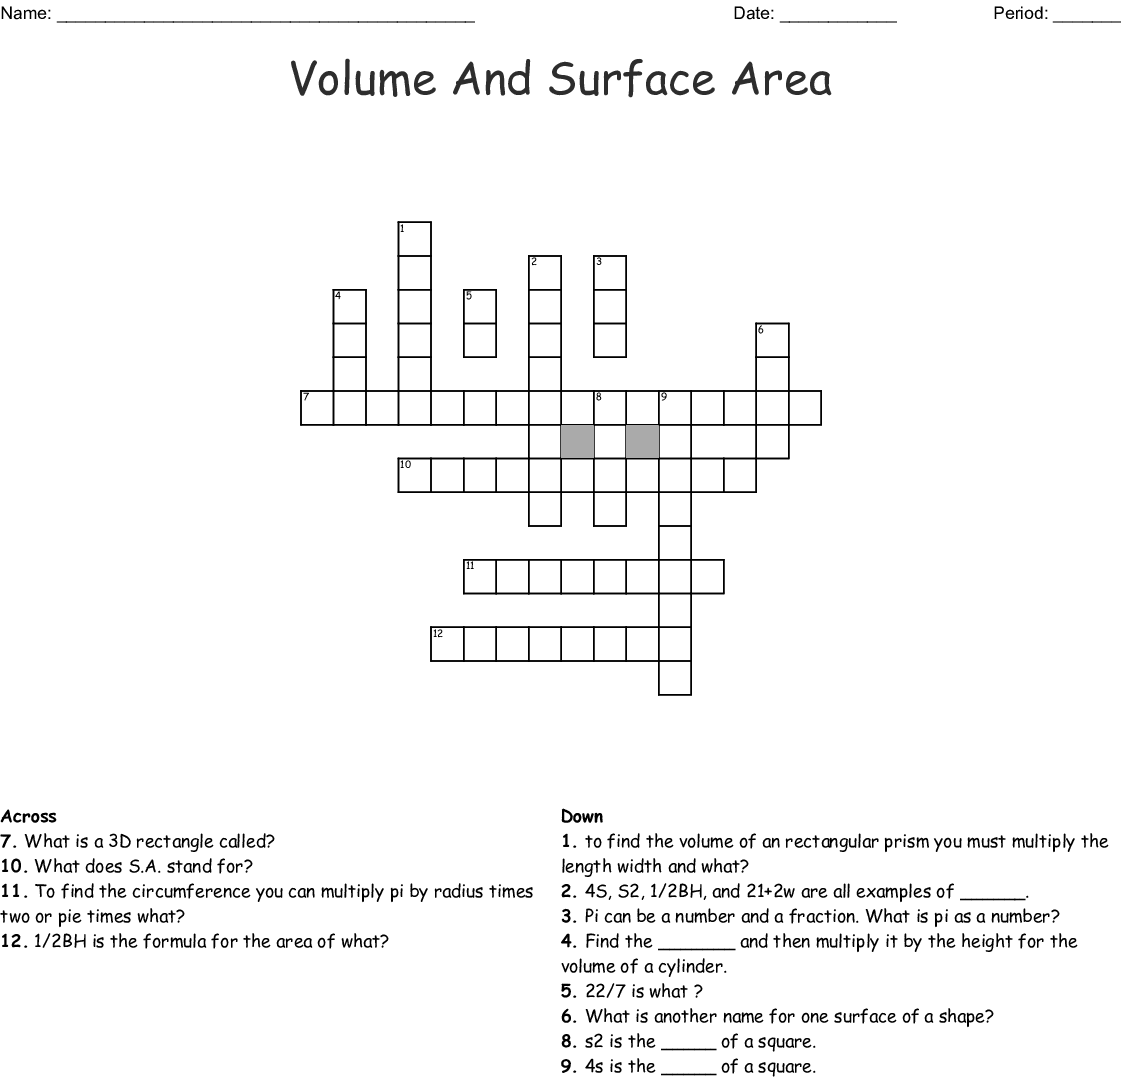 Volume And Surface Area Crossword